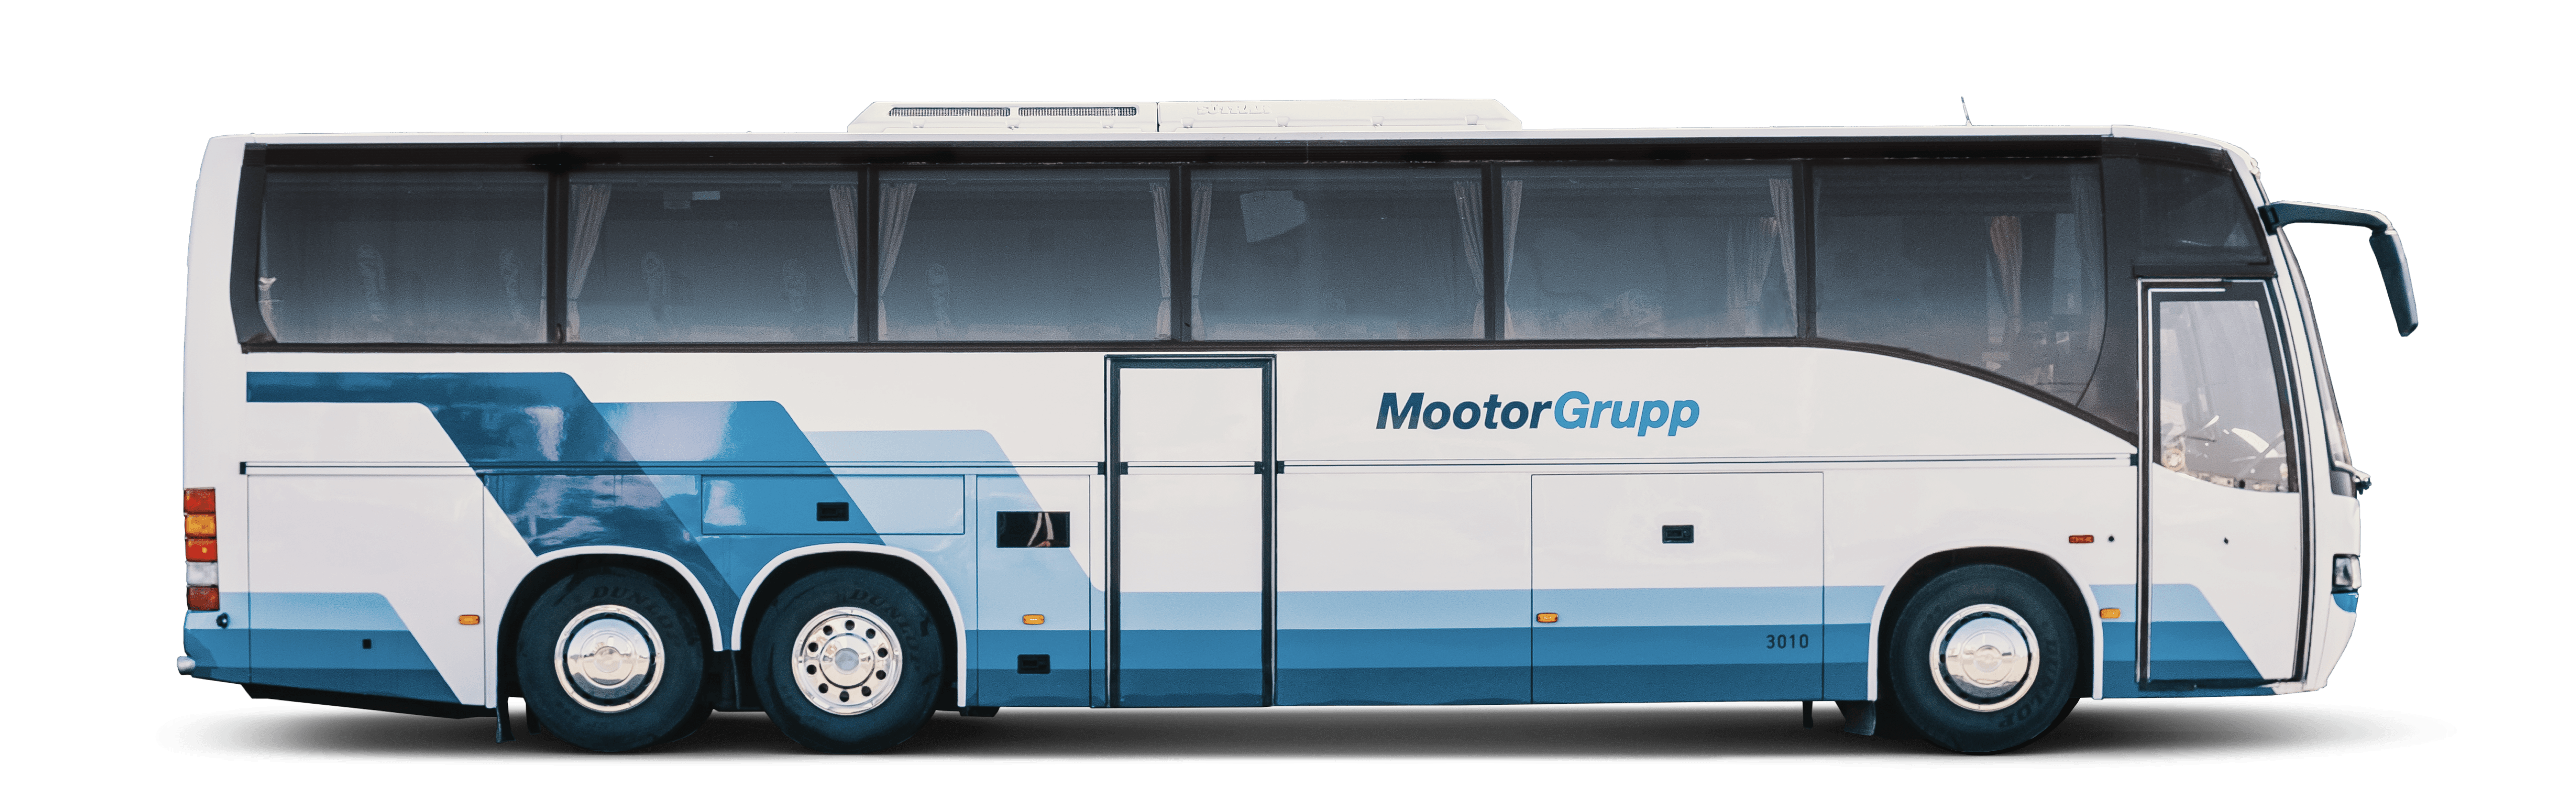 Volvo B12 Carrus Star 602